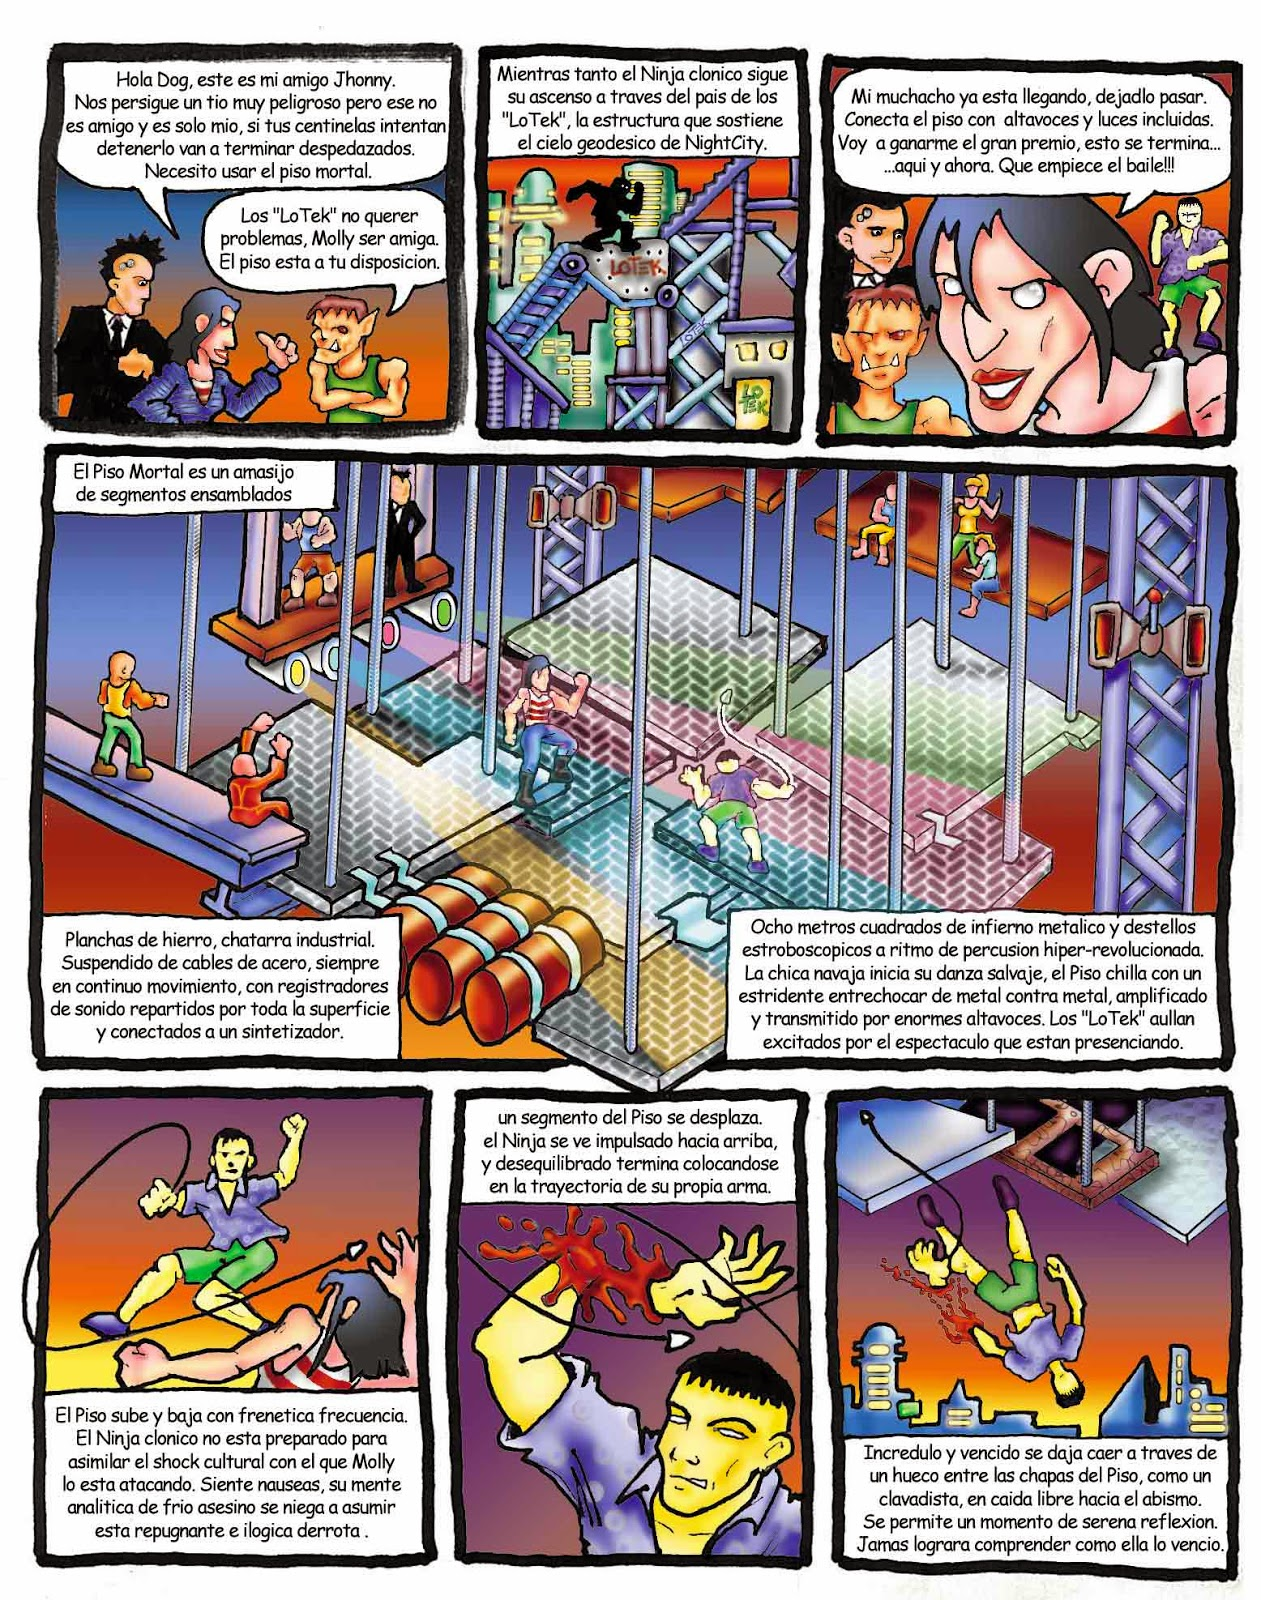 ciberpunk, william gibson, jhonny mnemonic, quemando cromo, burning chrome, comic, ilustracion, dibujos